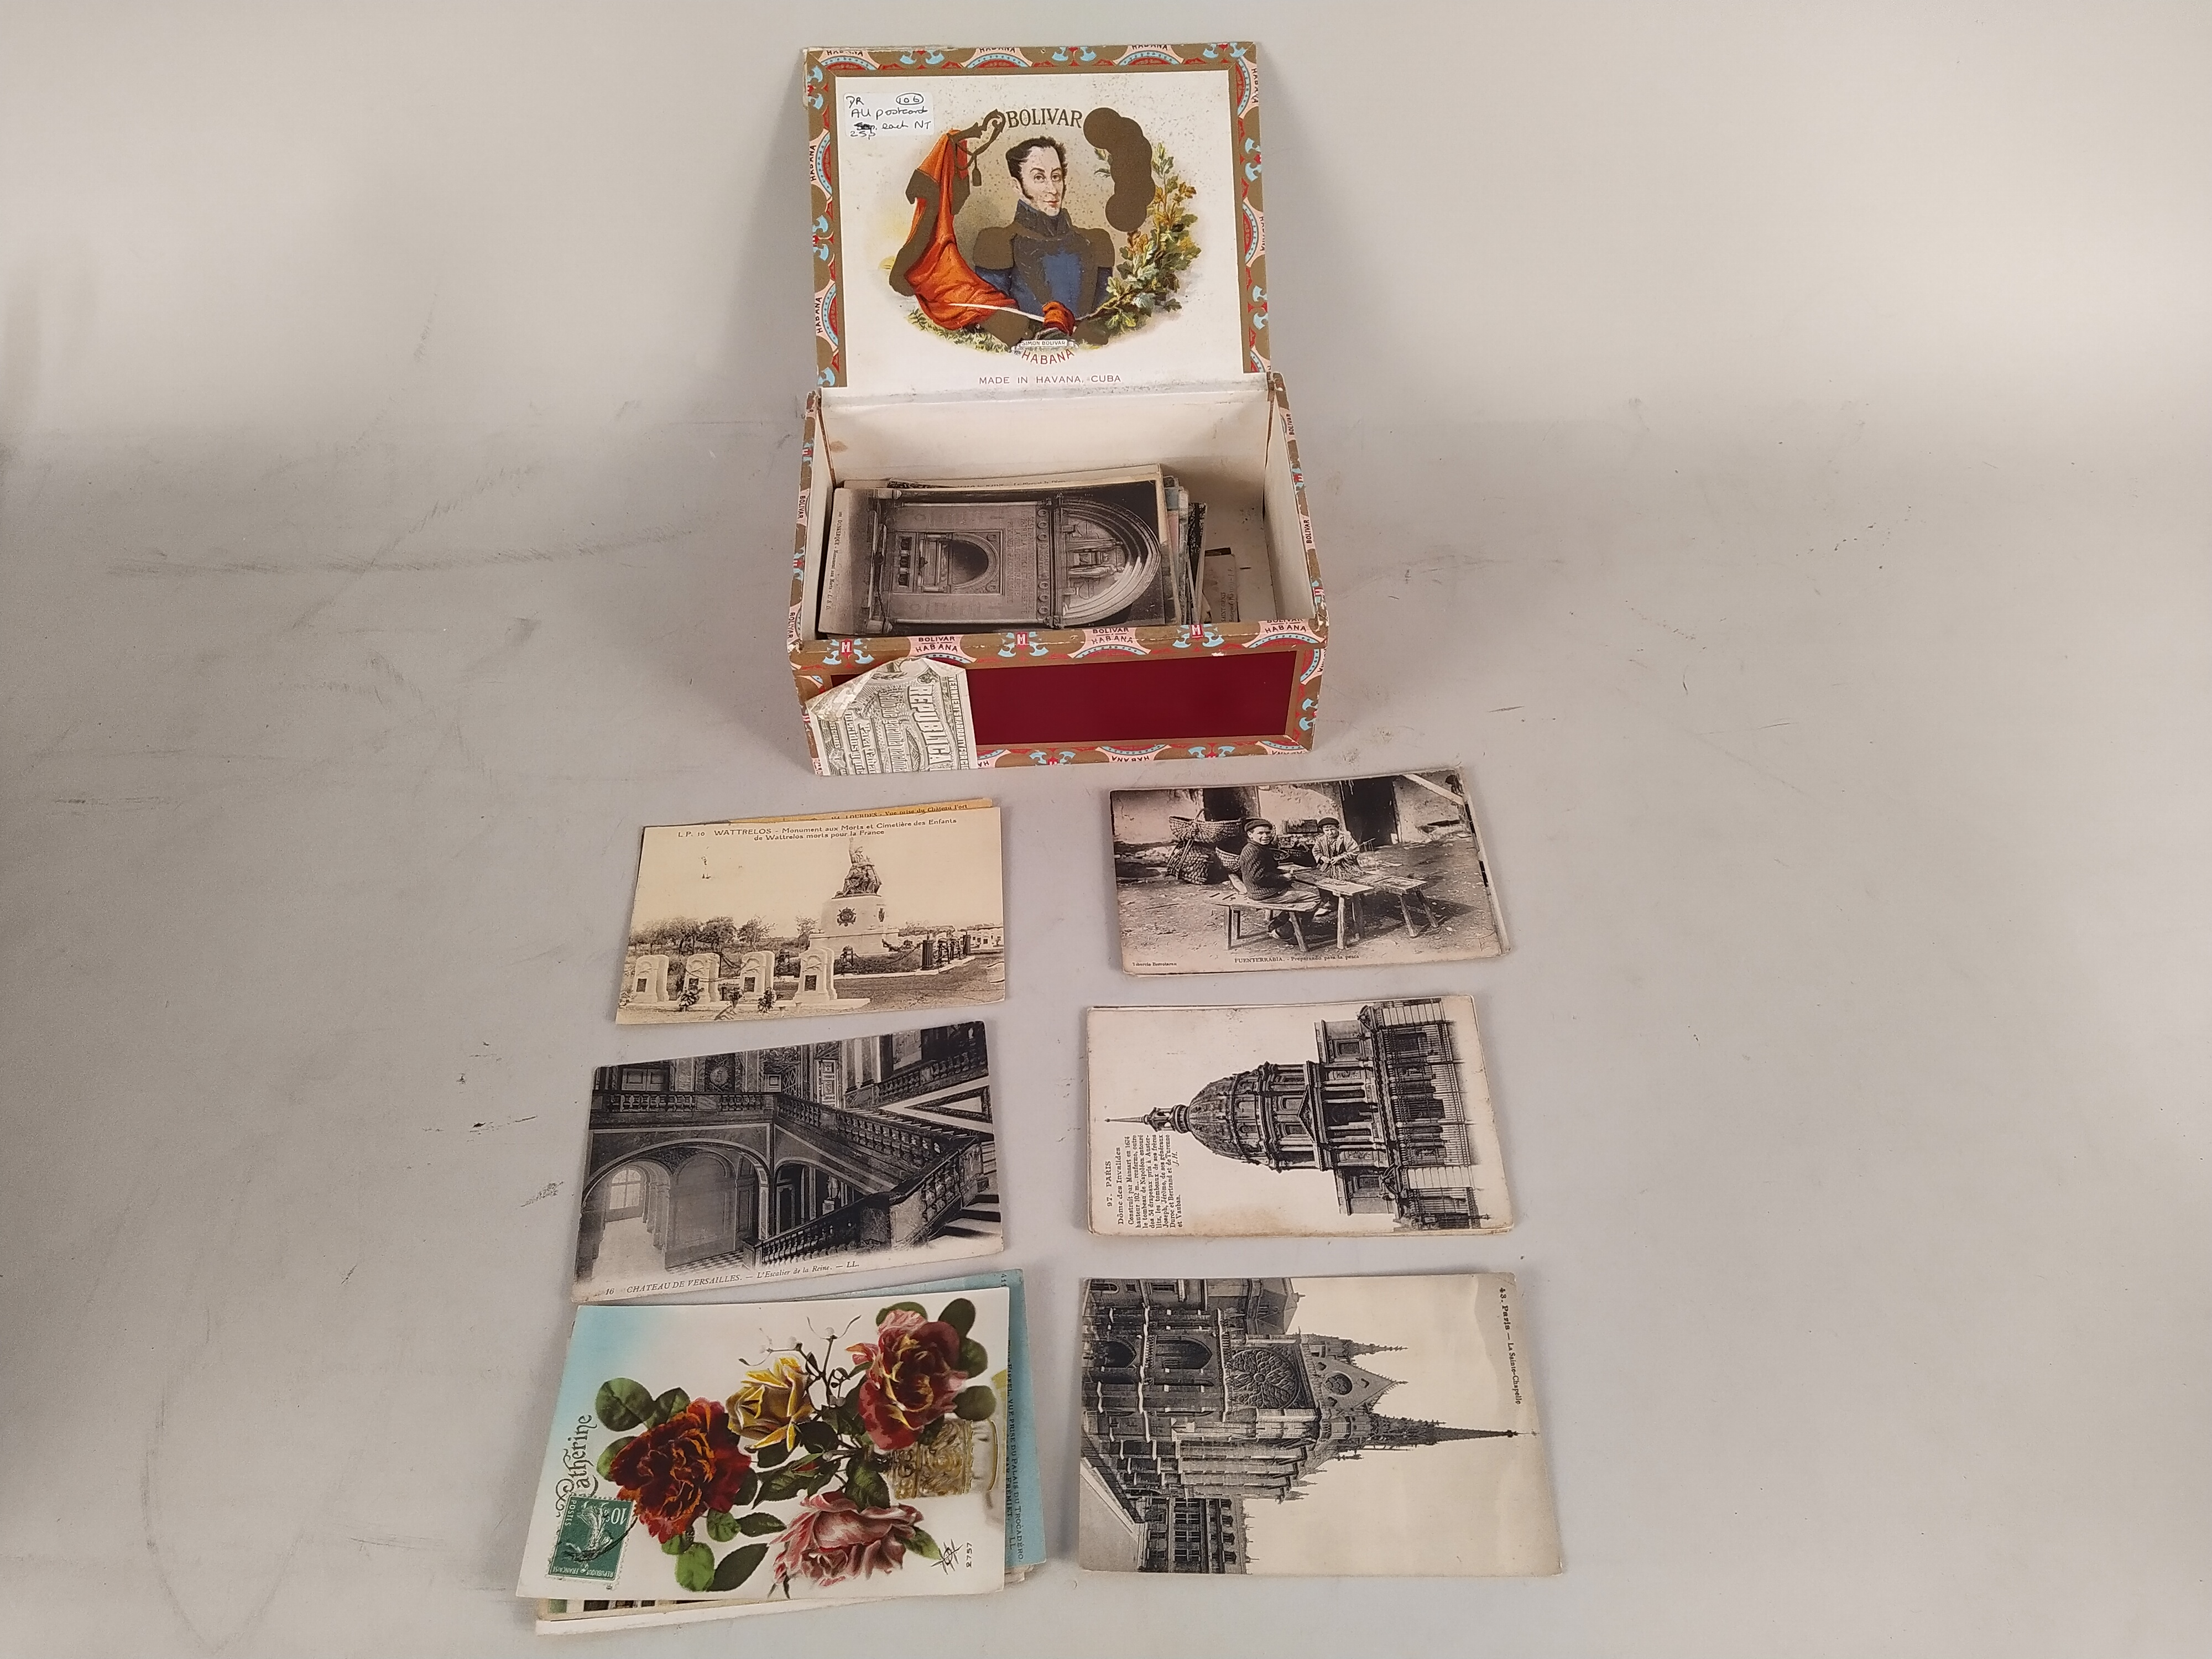 A selection of early 20th Century postcards in old cigar box plus an antique chestnut roaster and